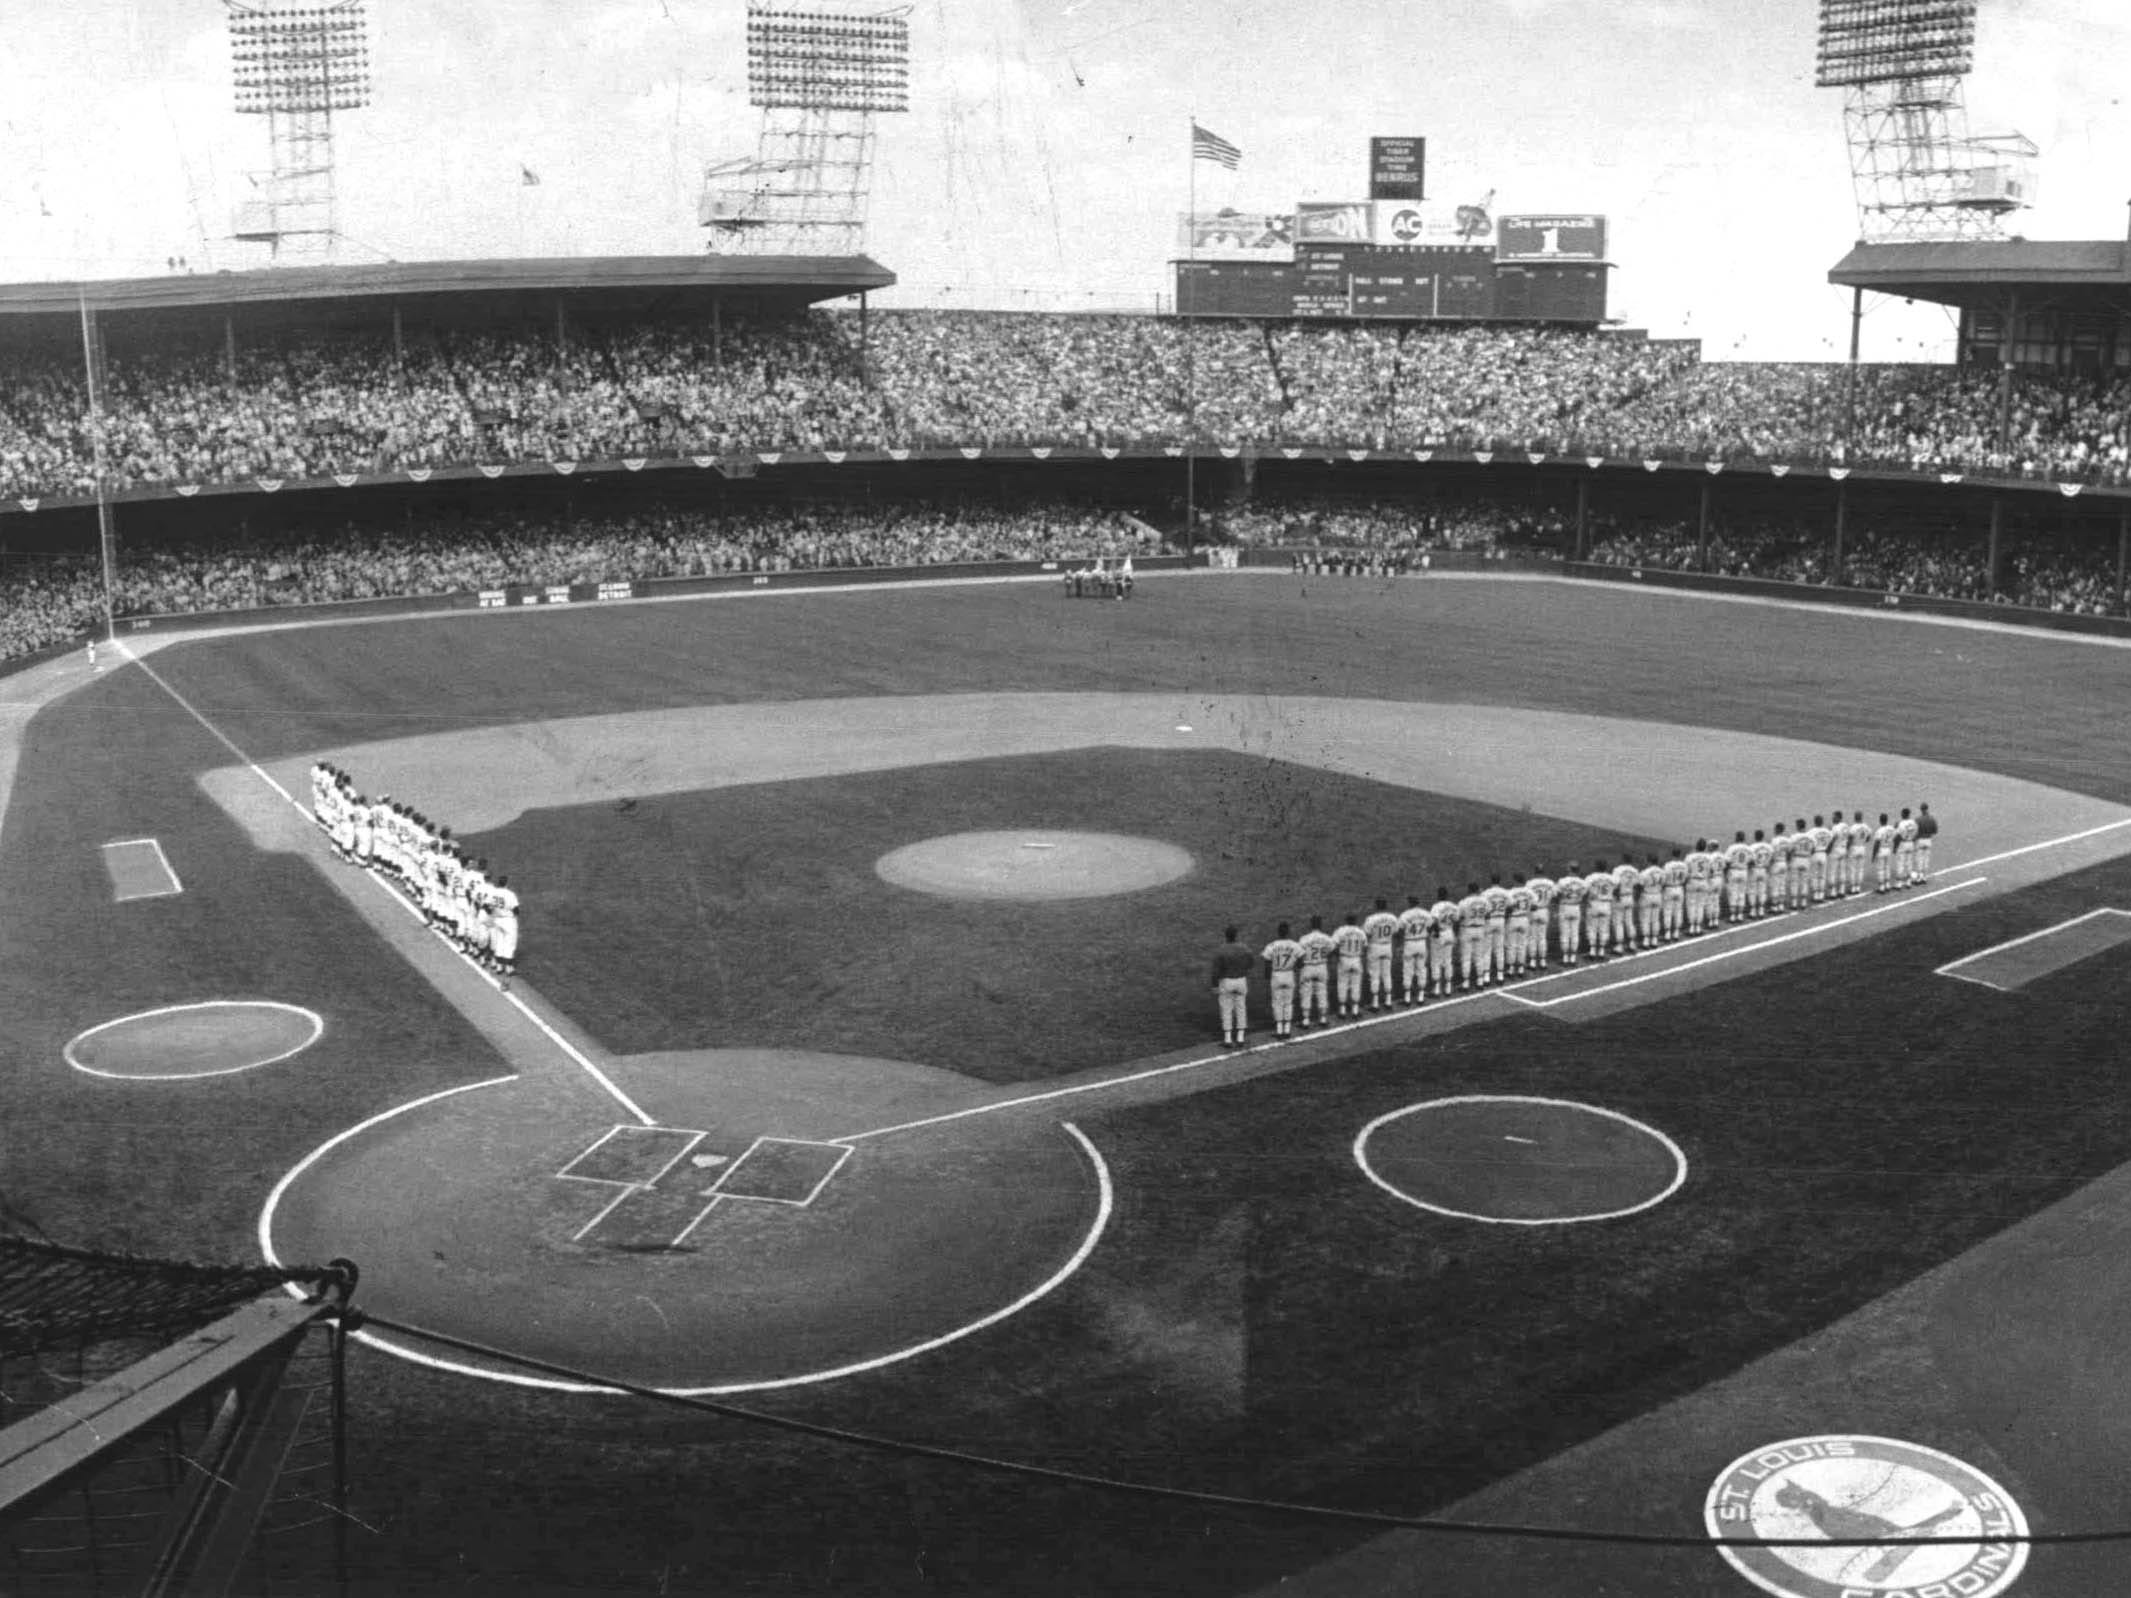 World Series -- ceremonies opening the first World Series game in 23 years in 1968 at Tiger Stadium in Detroit.